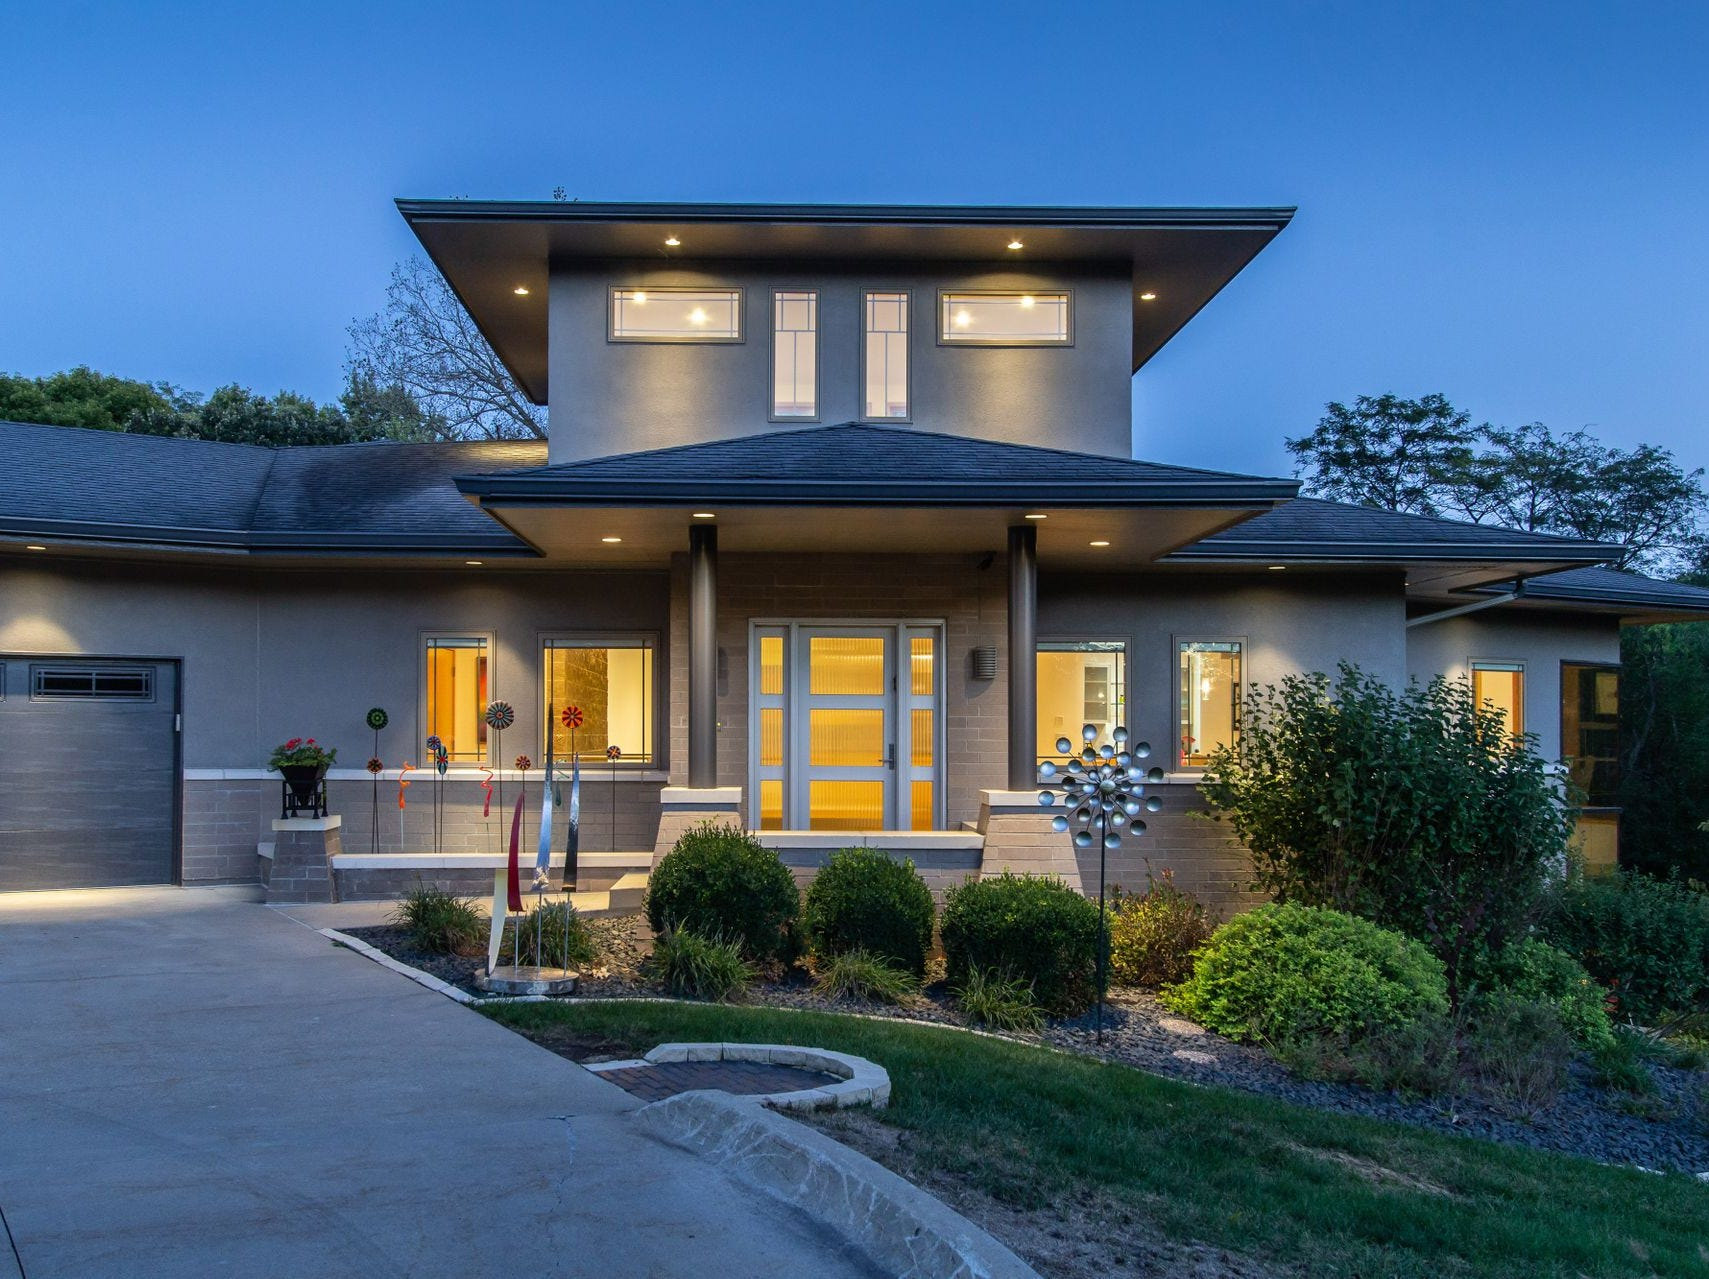 A unique home designed by an award-winning architect is for sale in West Des Moines for $1.19 million.